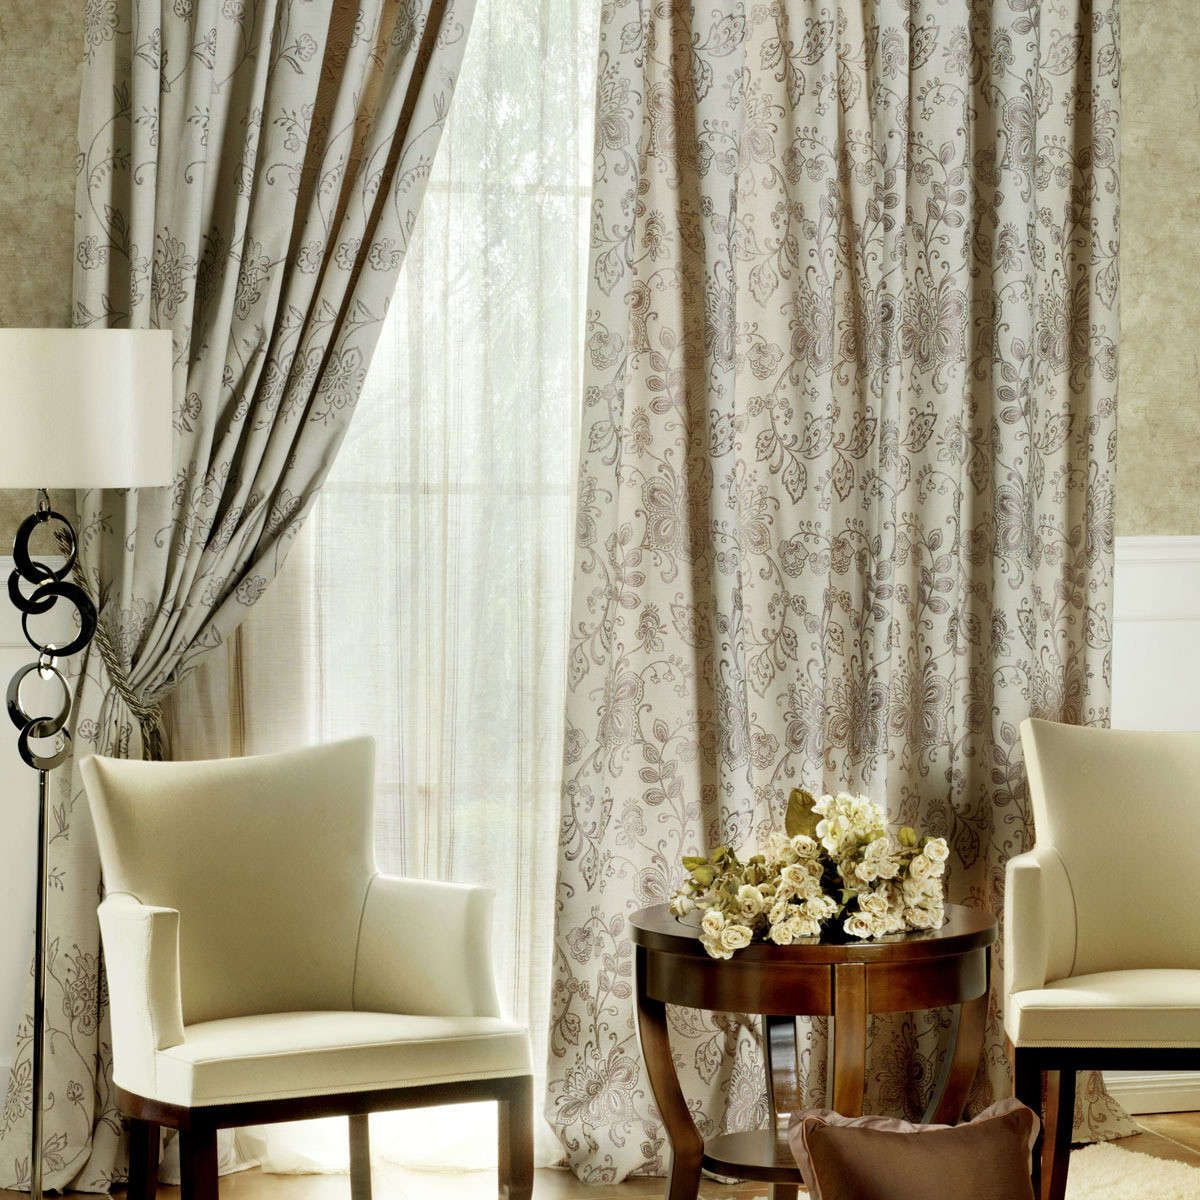 Living Room Curtain Designs Endearing Užuolaidos  Domus Lumina Užuolaidos  Pinterest  House Decorating Inspiration